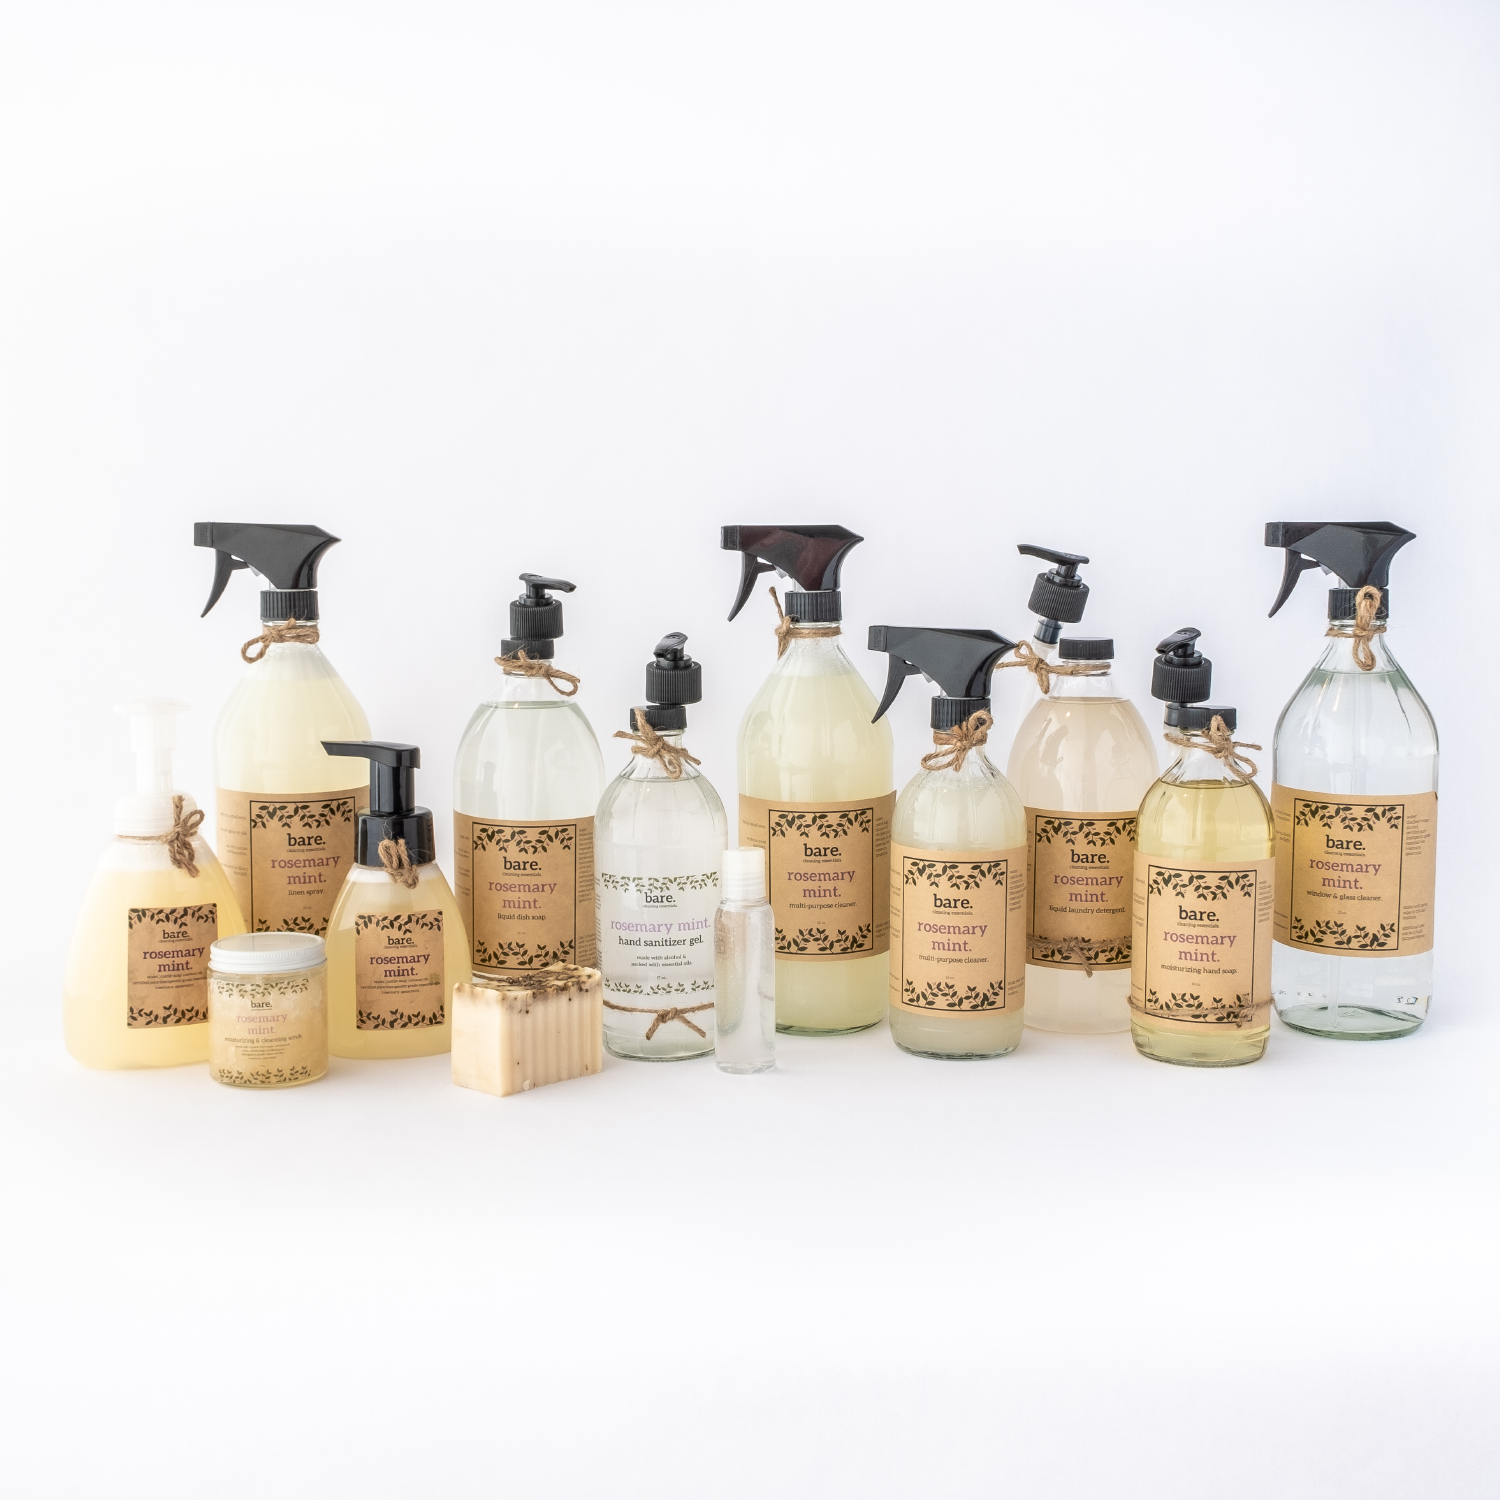 rosemary mint - full product line - clean with bare